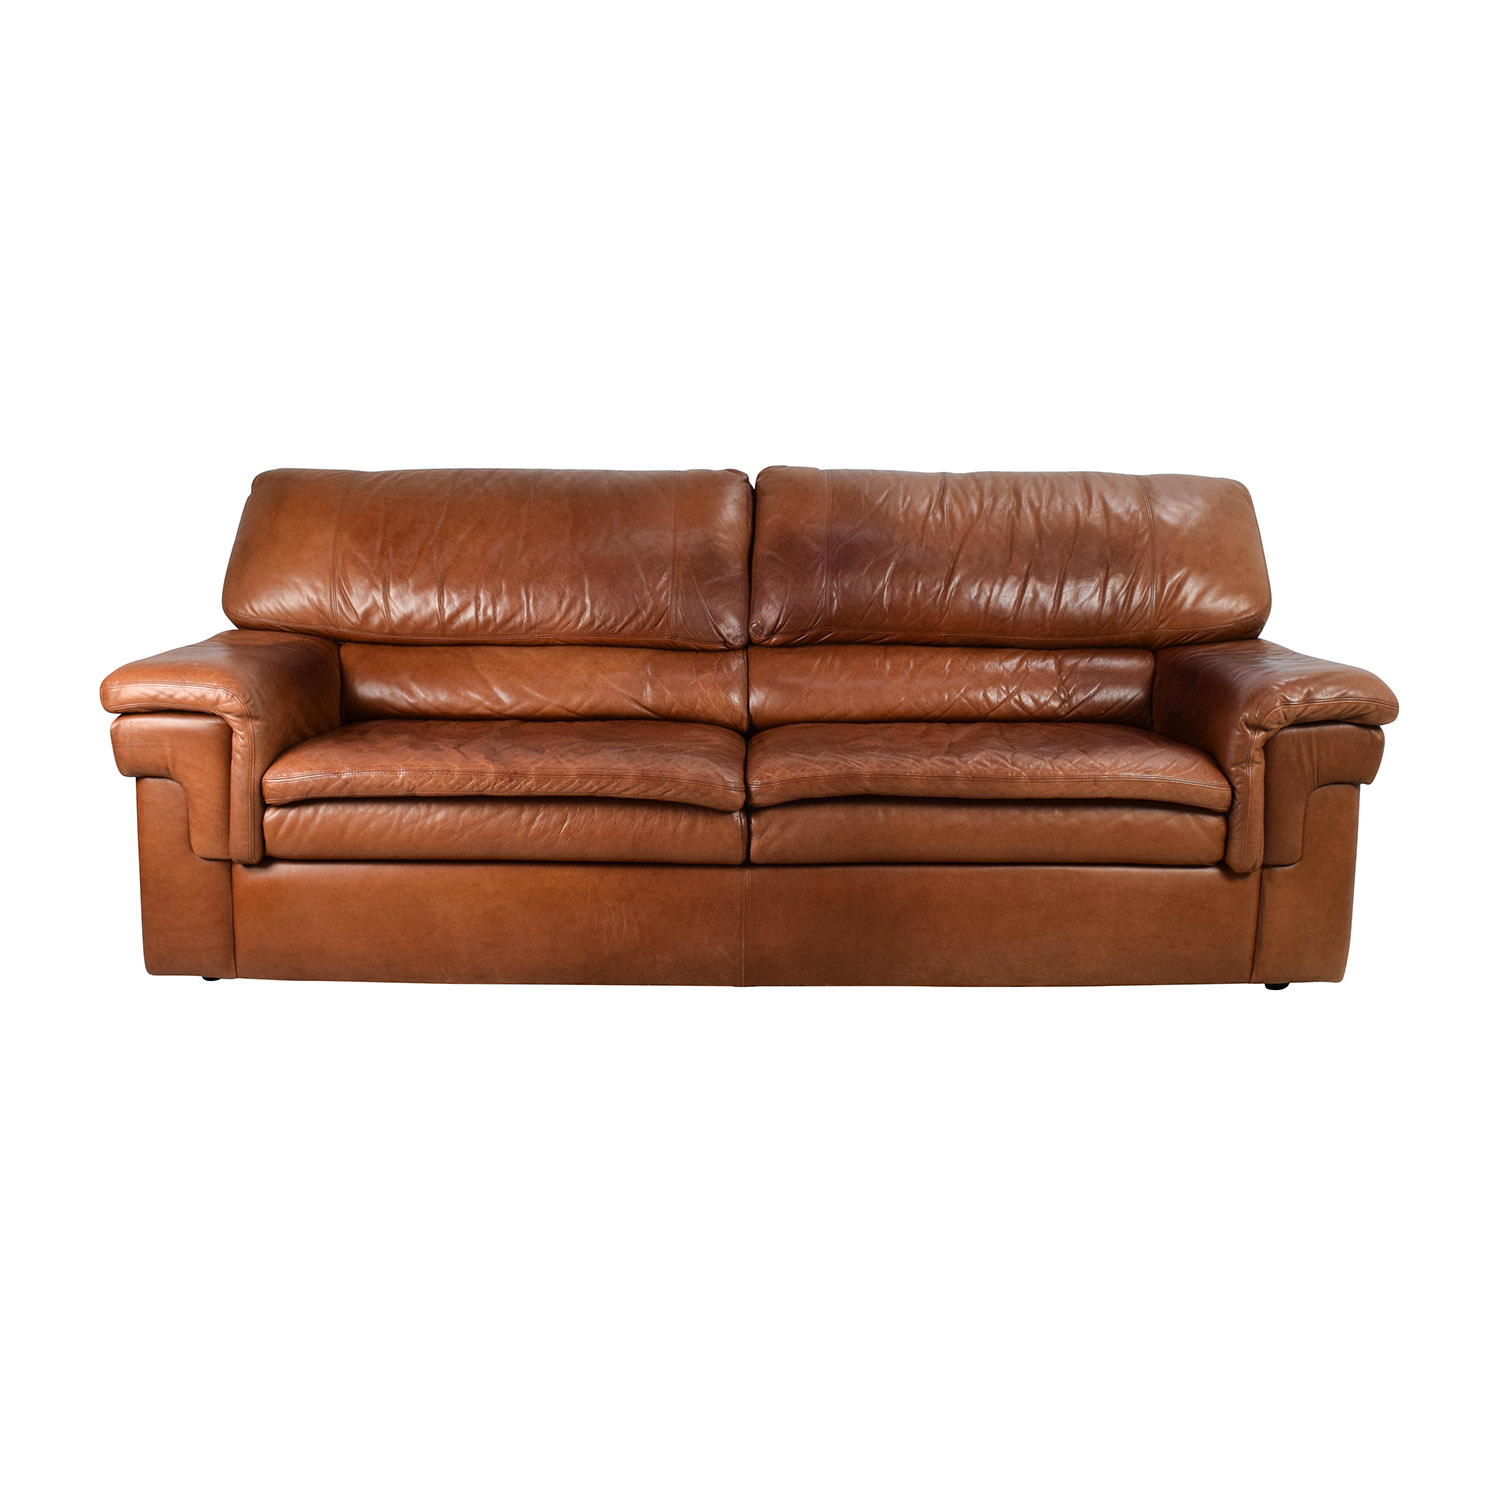 Classic Cherry Brown Leather Sofa / Sofas